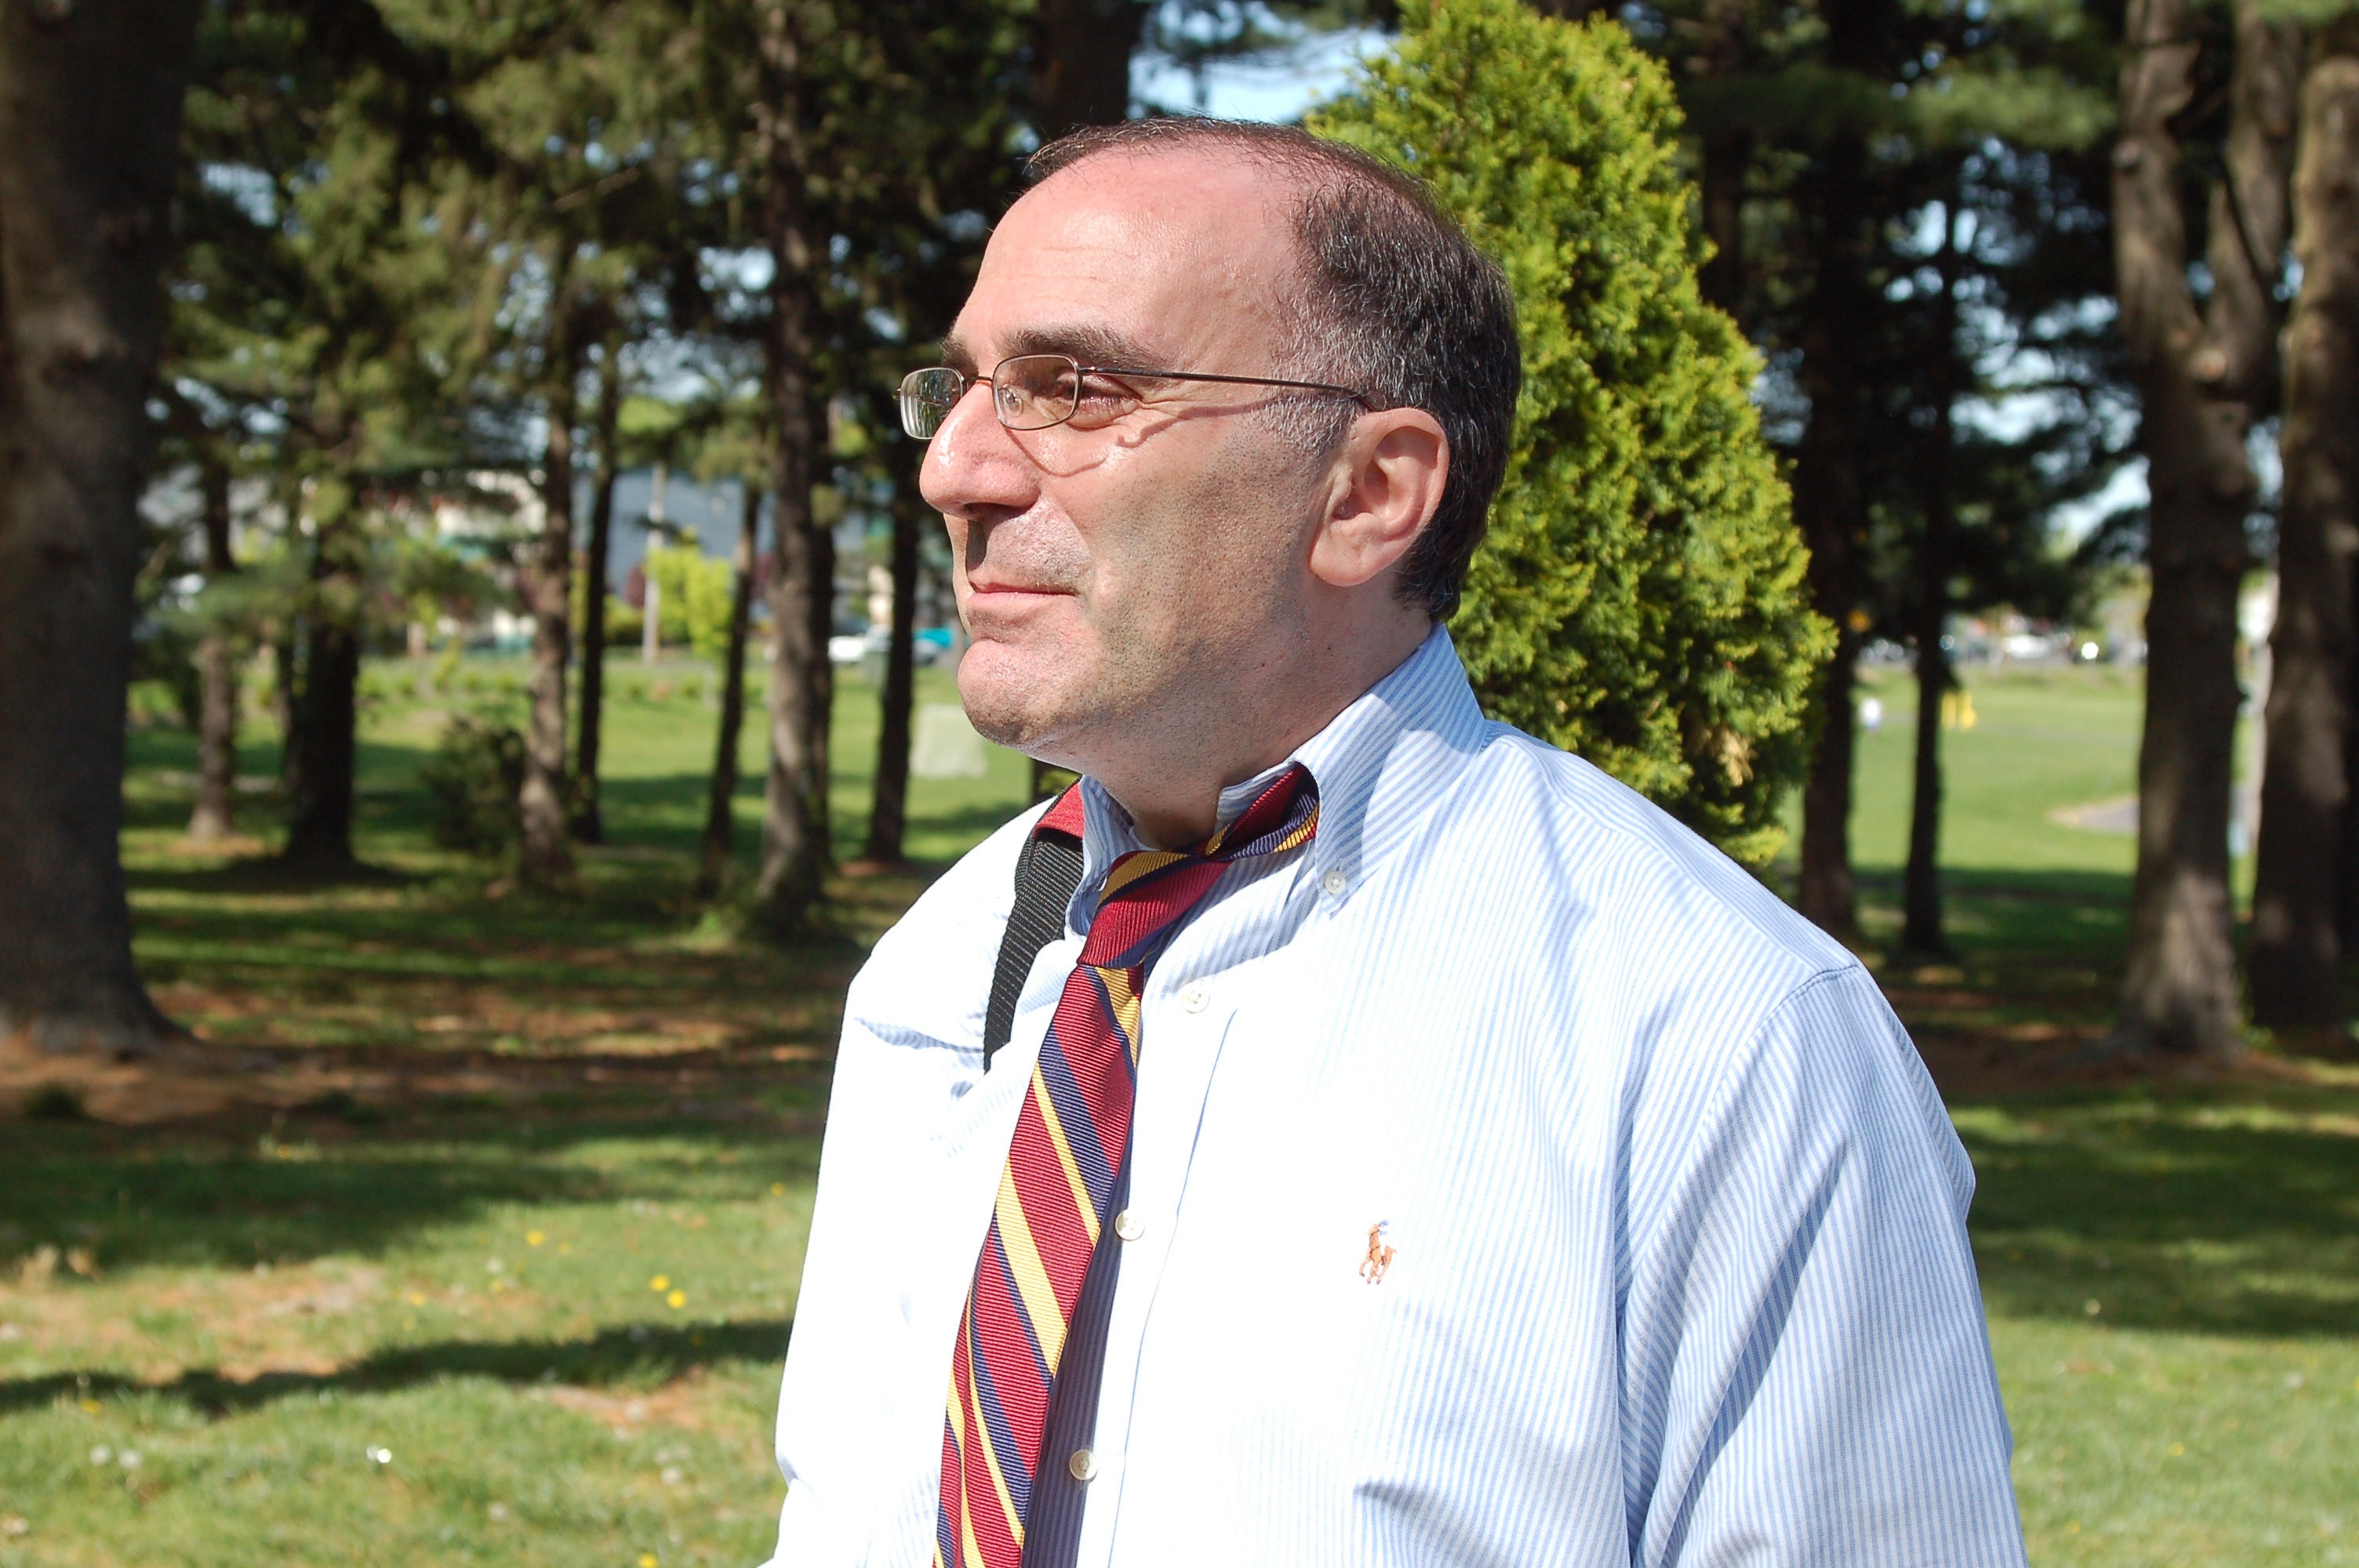 Man with a tie photo